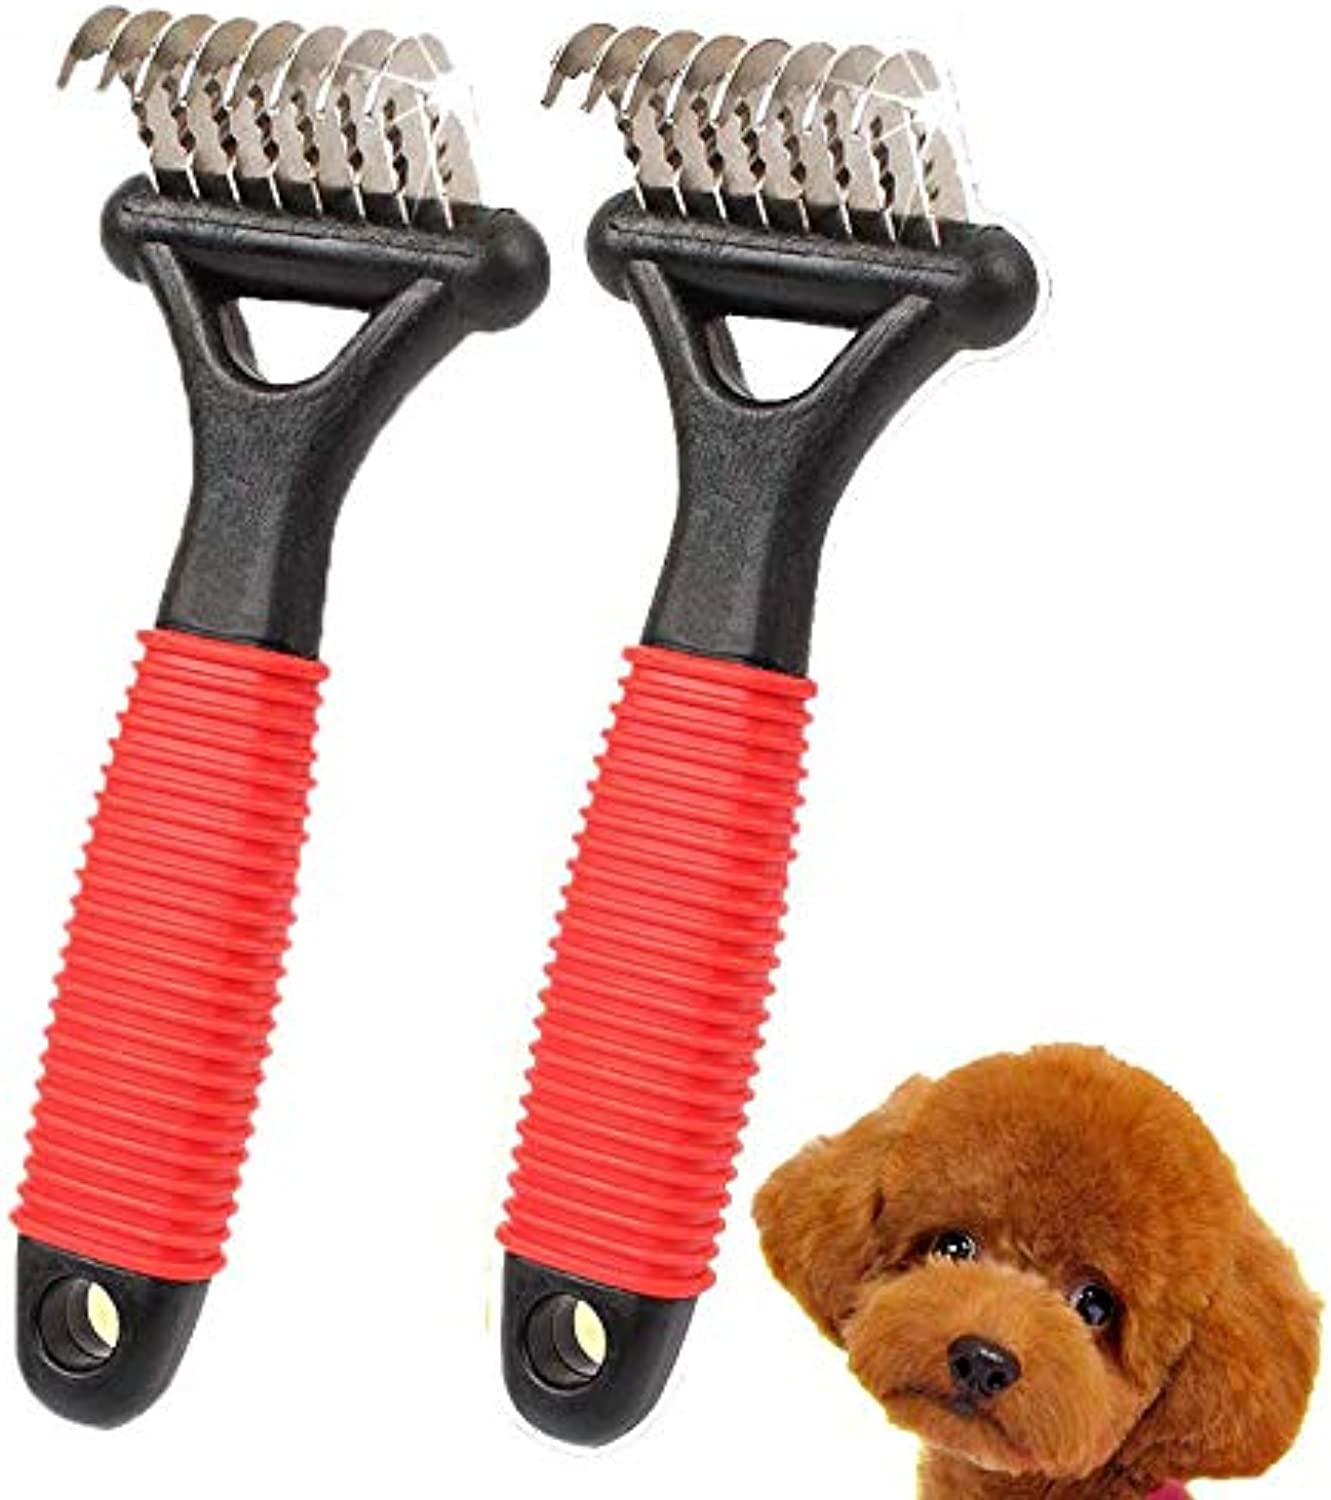 Dog Comb, Dog Detangler, Dog Grooming Tools, Dematting Rake Brush with Small Blades  Easily Removes Mats, Knots & Tangles Quickly